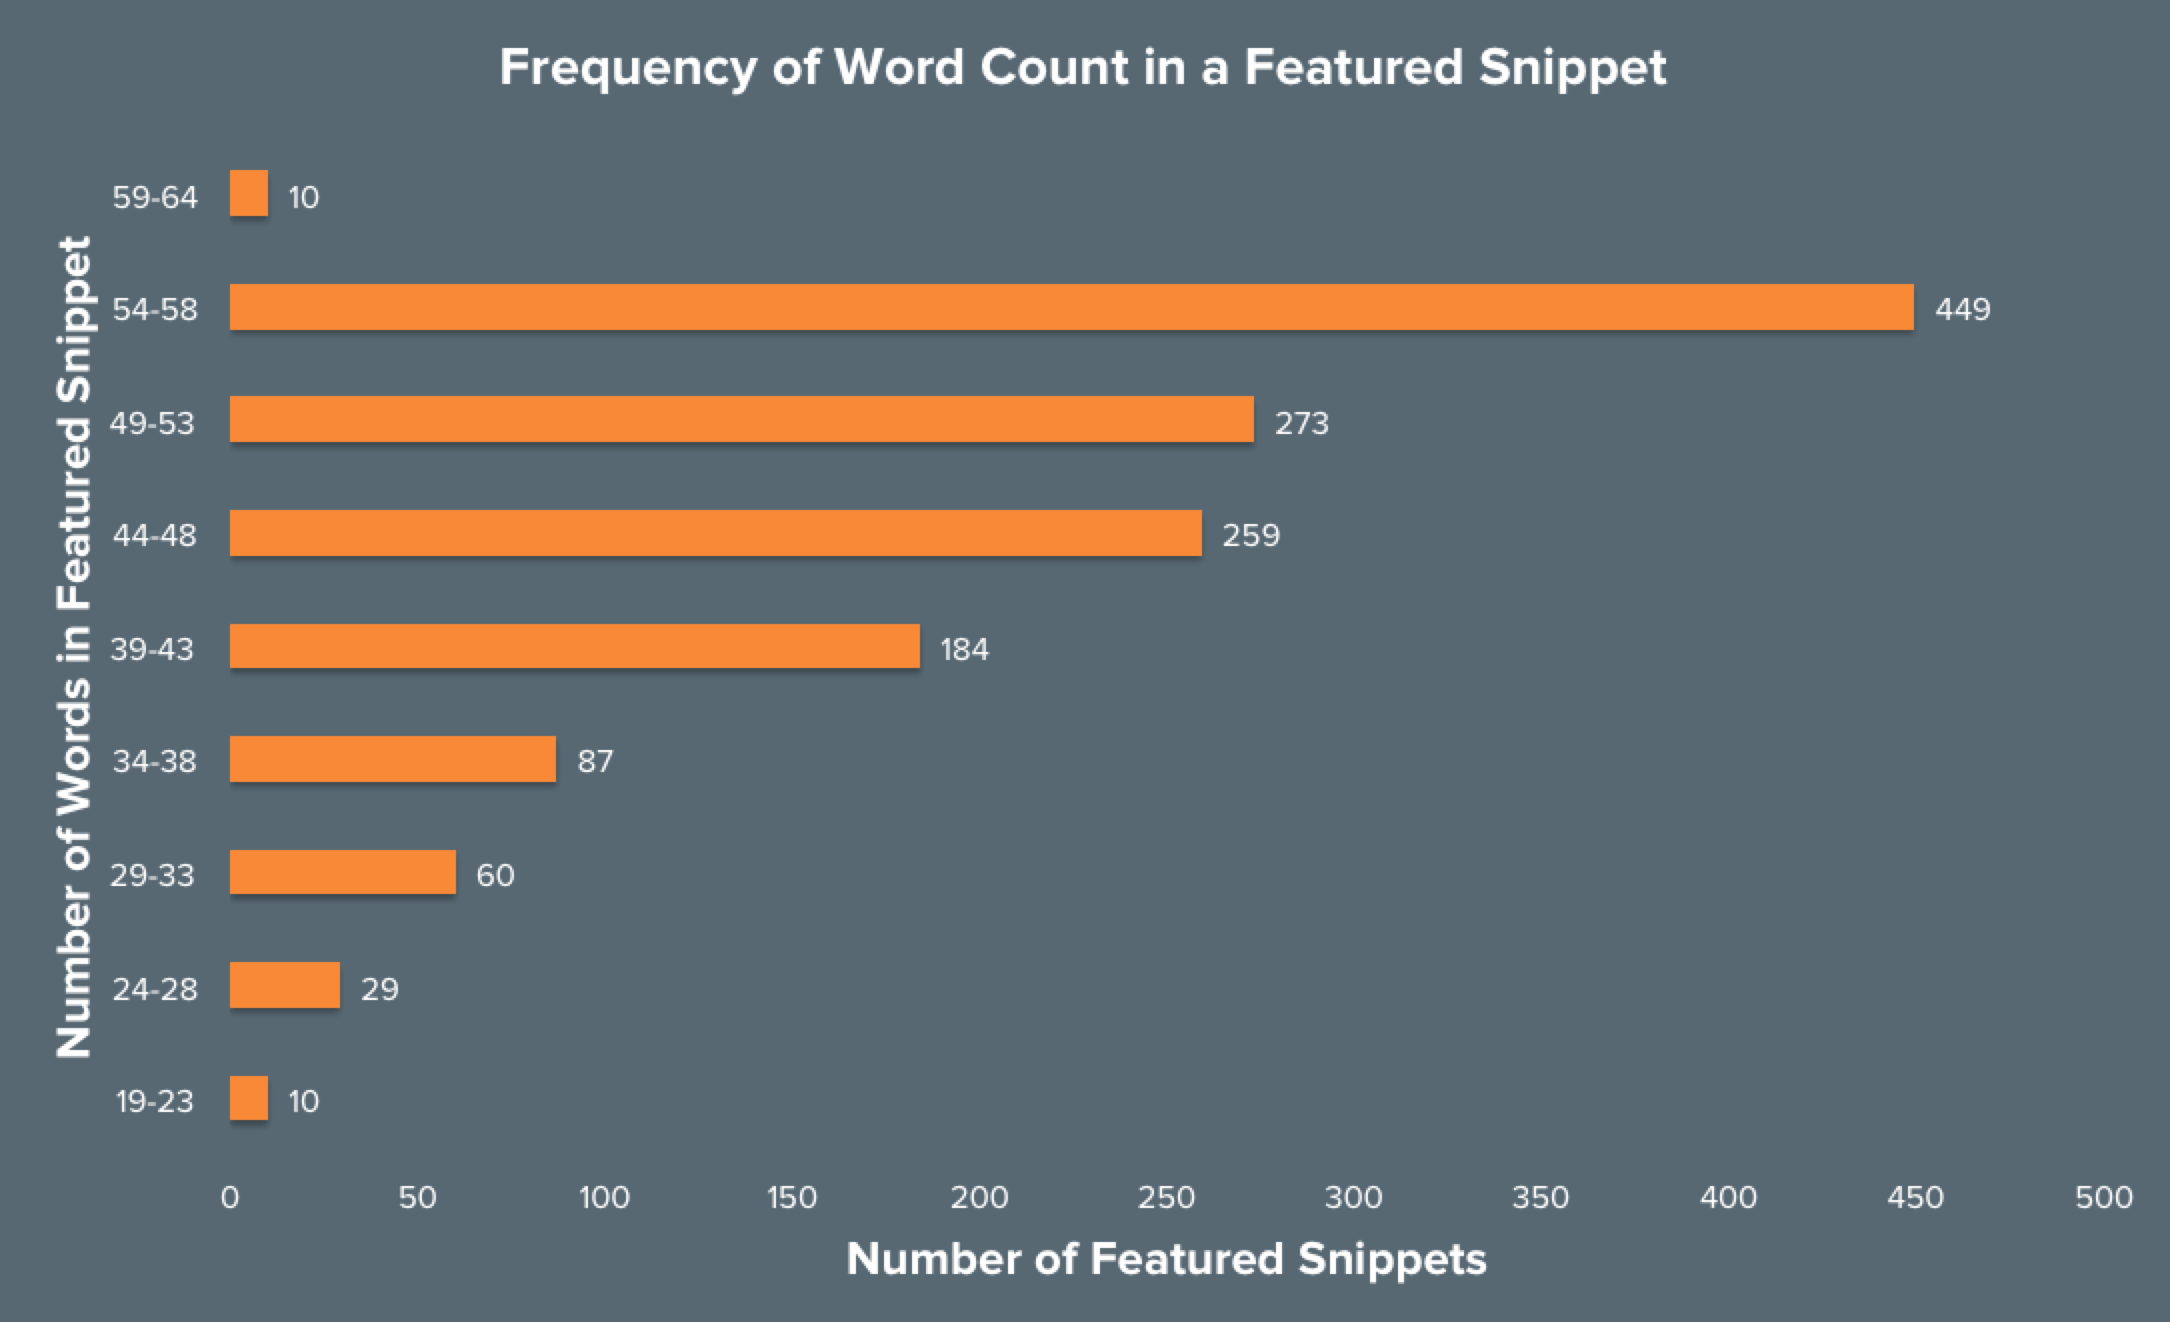 Chart: Frequency of Featured Snippet Word Count